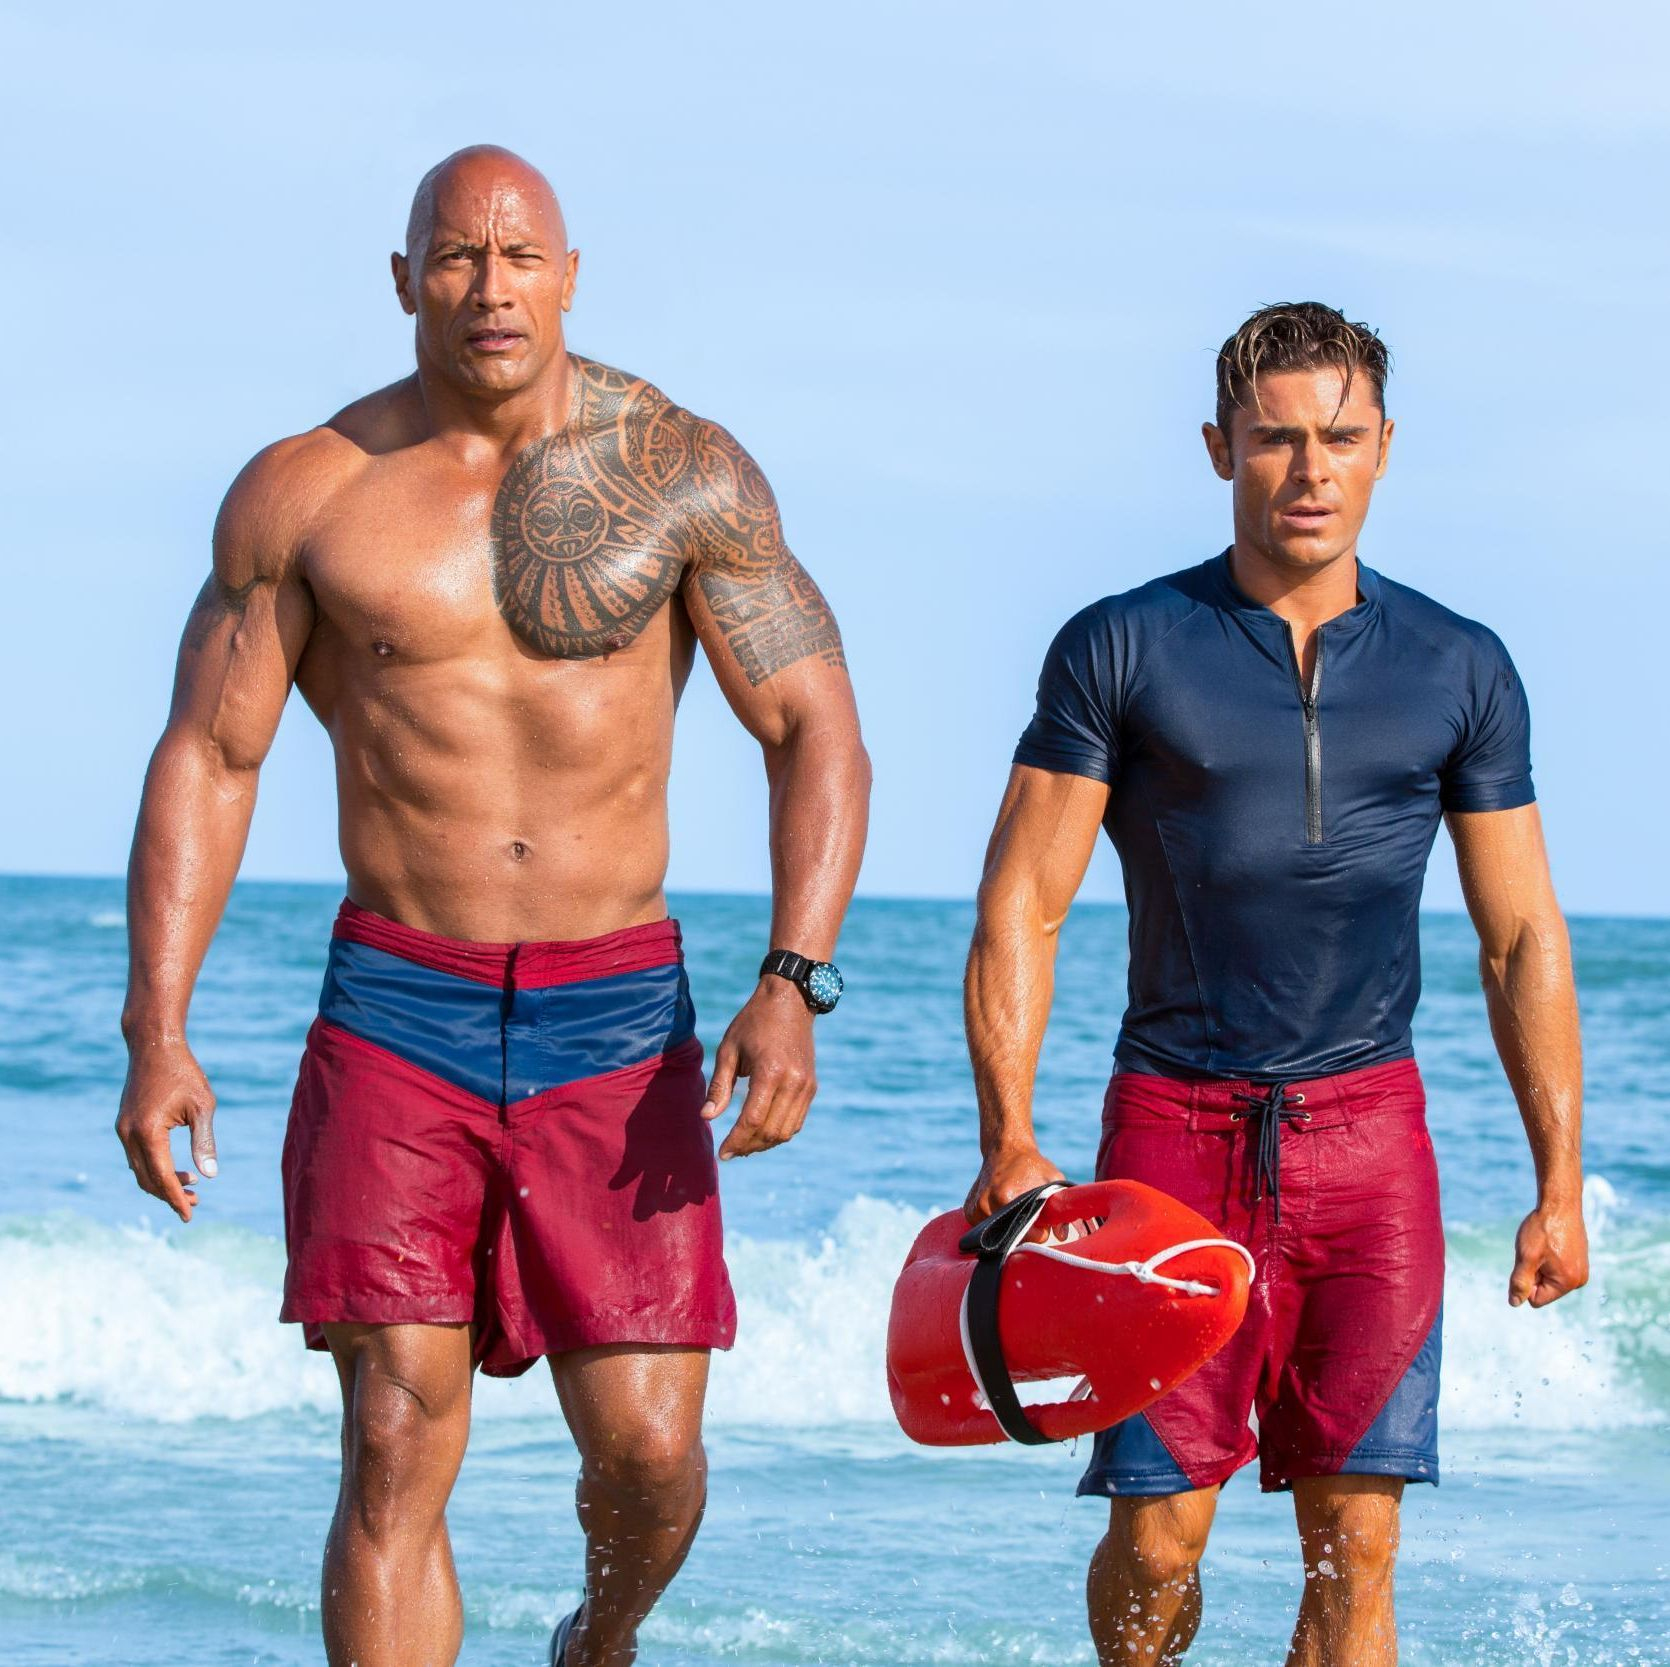 Baywatch Dwayne Johnson battles crime bosses on the beaches of Miami in this R-rated action-comedy update of the popular 1990s TV show, which co-stars Zac Efron.